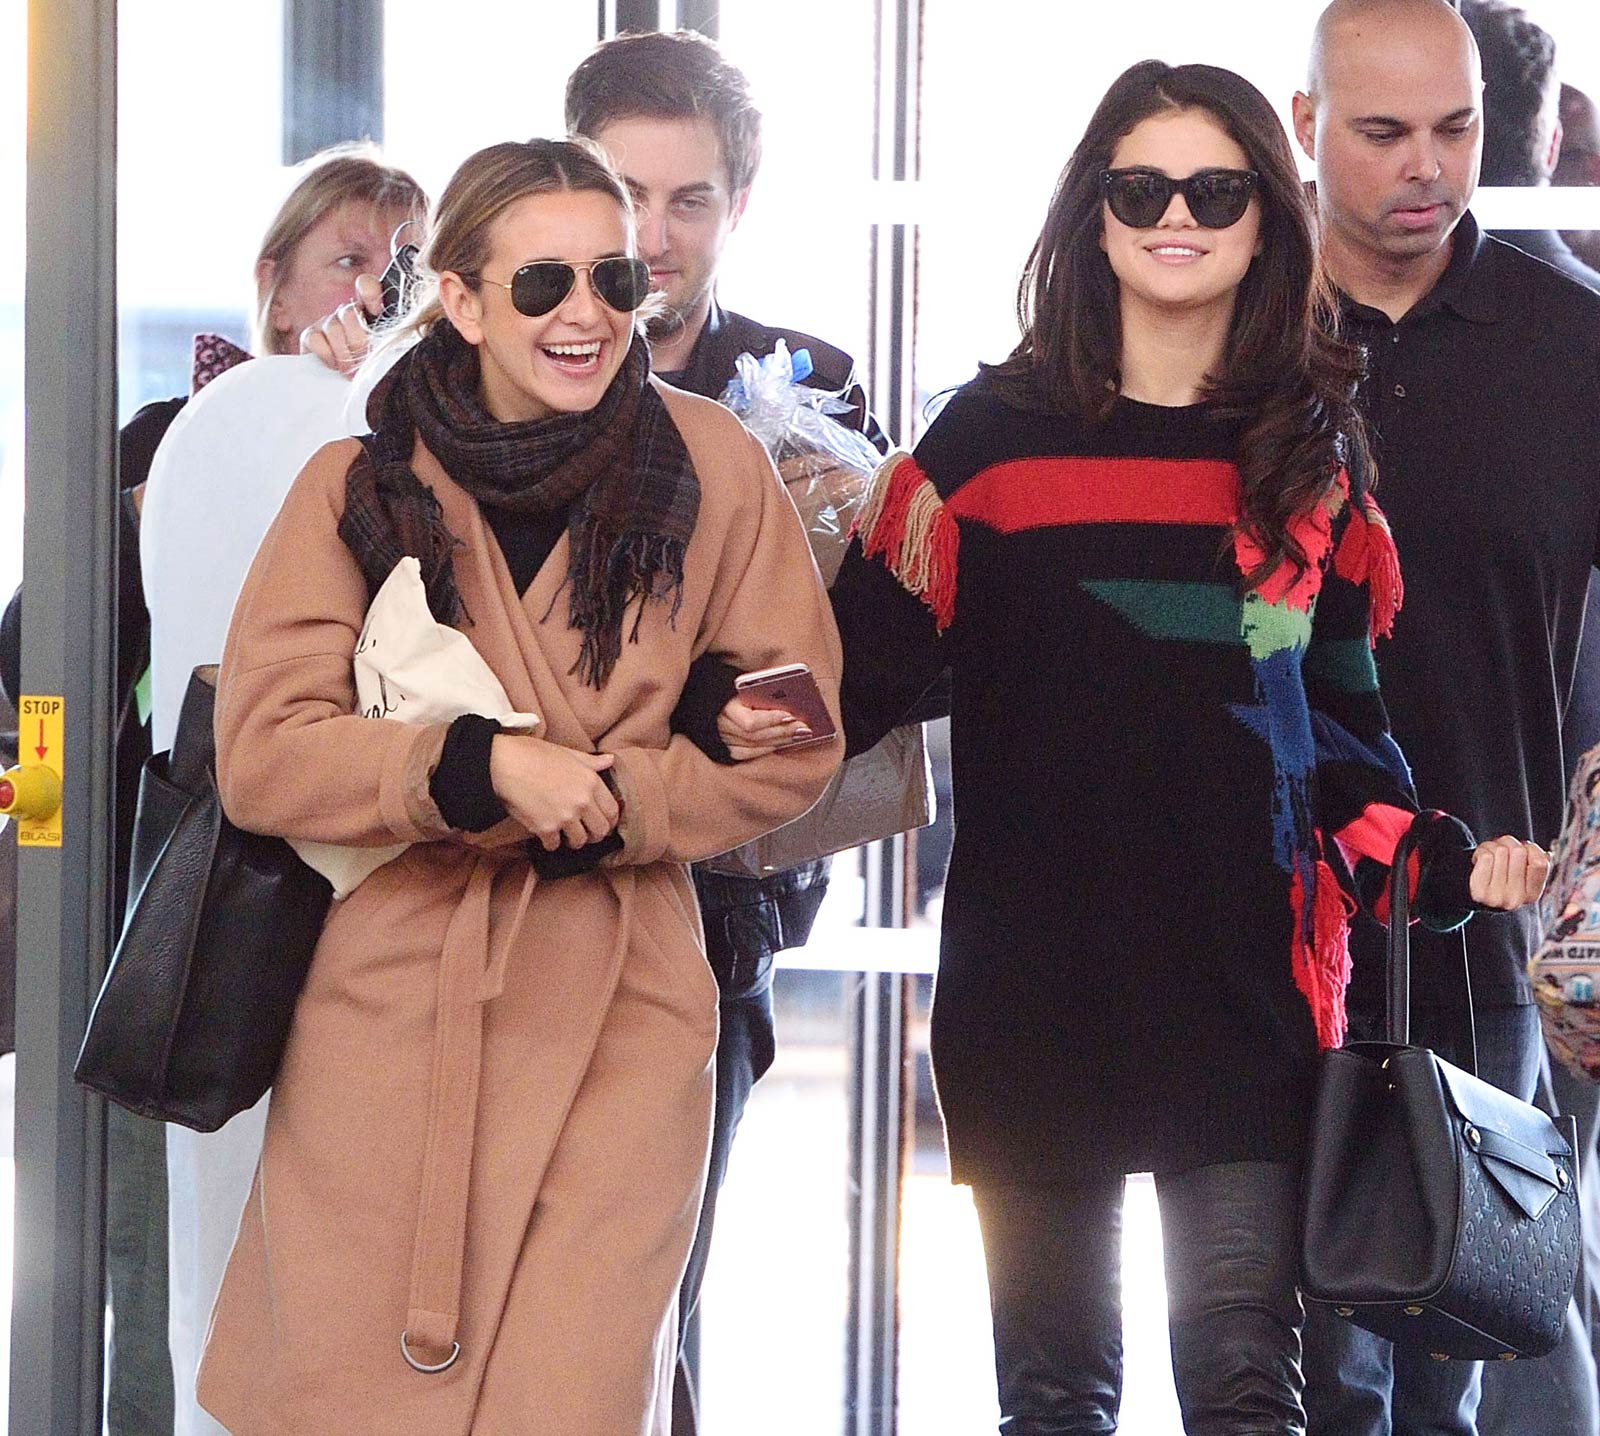 Selena Gomez departing from JFK Airport